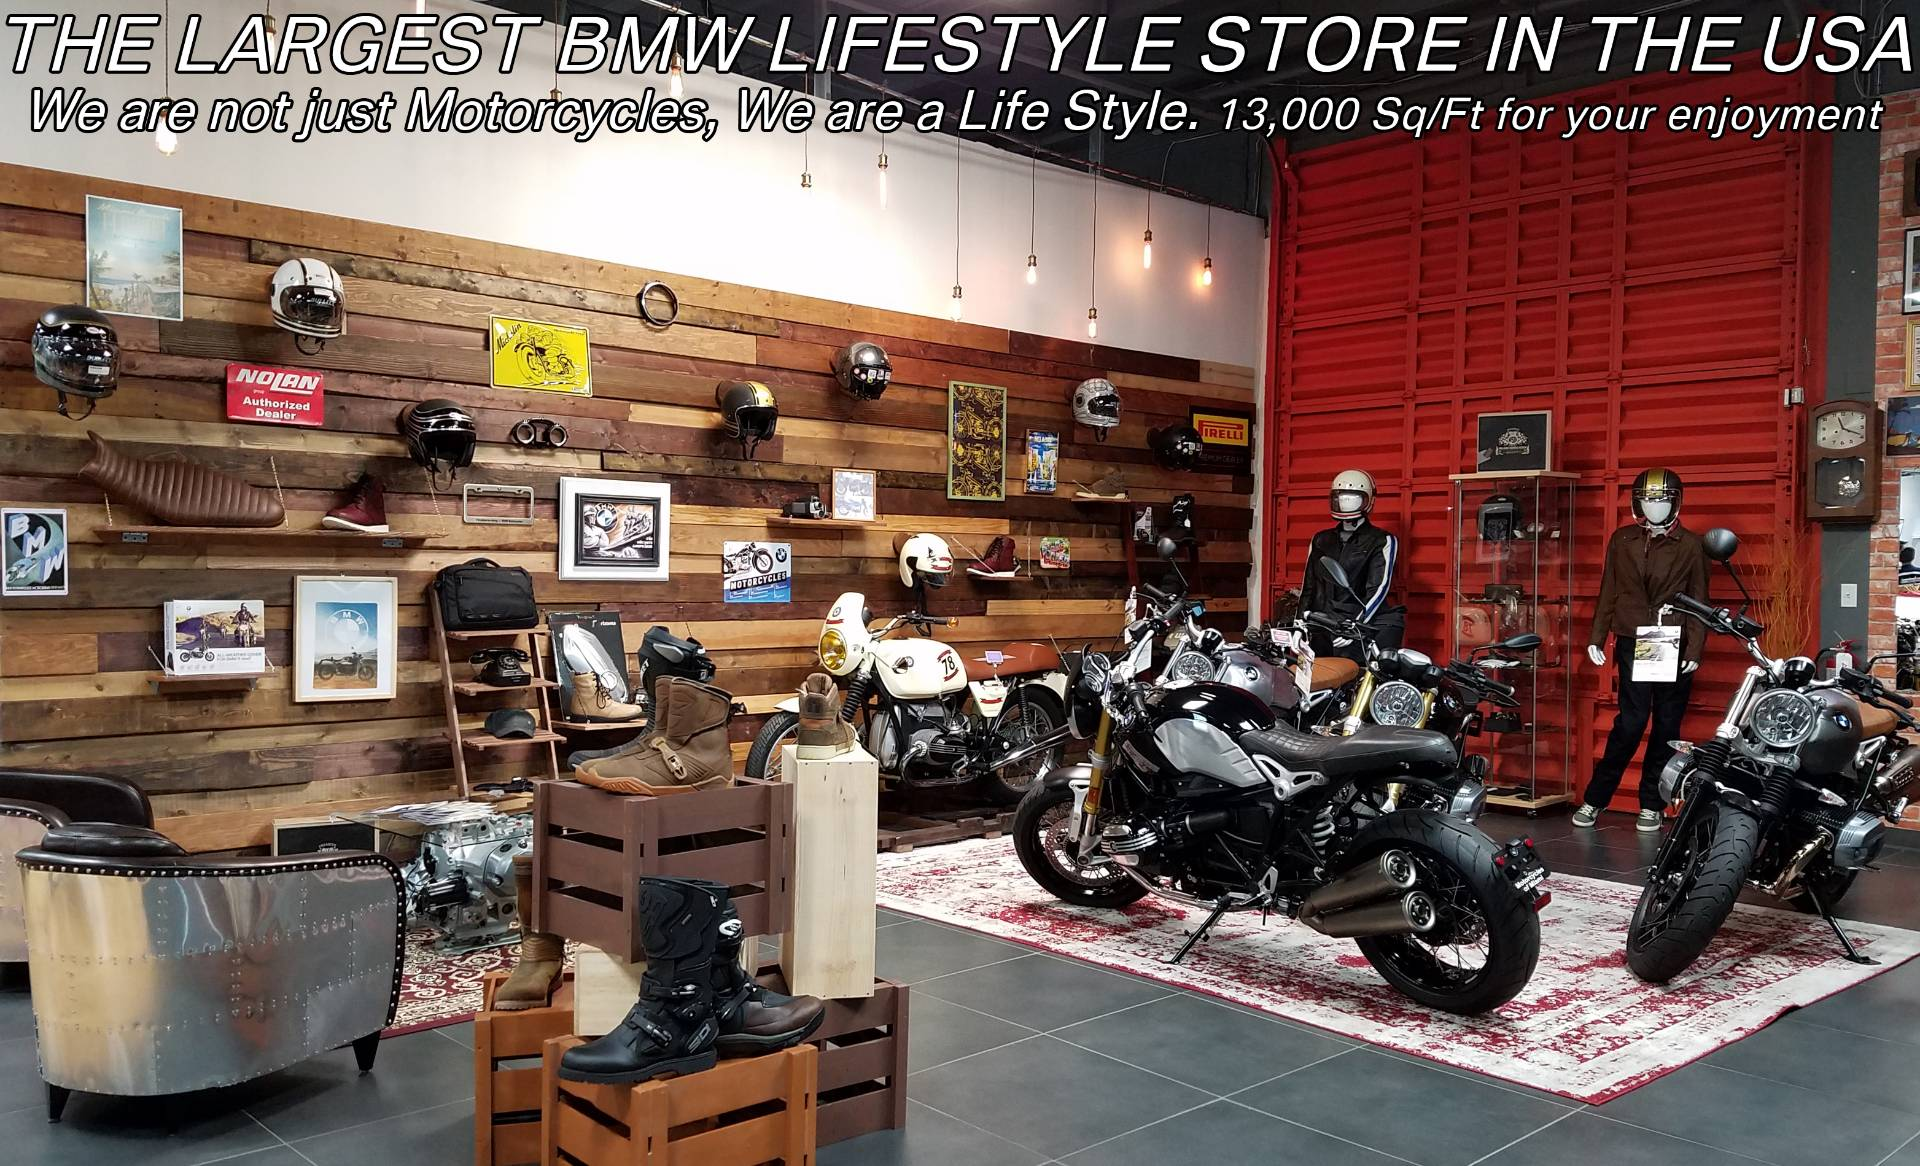 New 2019 BMW G 310 GS for sale, BMW G 310GS for sale, BMW Motorcycle GS, new BMW GS, Spirit of GS, BMW Motorcycles of Miami, Motorcycles of Miami, Motorcycles Miami, New Motorcycles, Used Motorcycles, pre-owned. #BMWMotorcyclesOfMiami #MotorcyclesOfMiami. - Photo 32